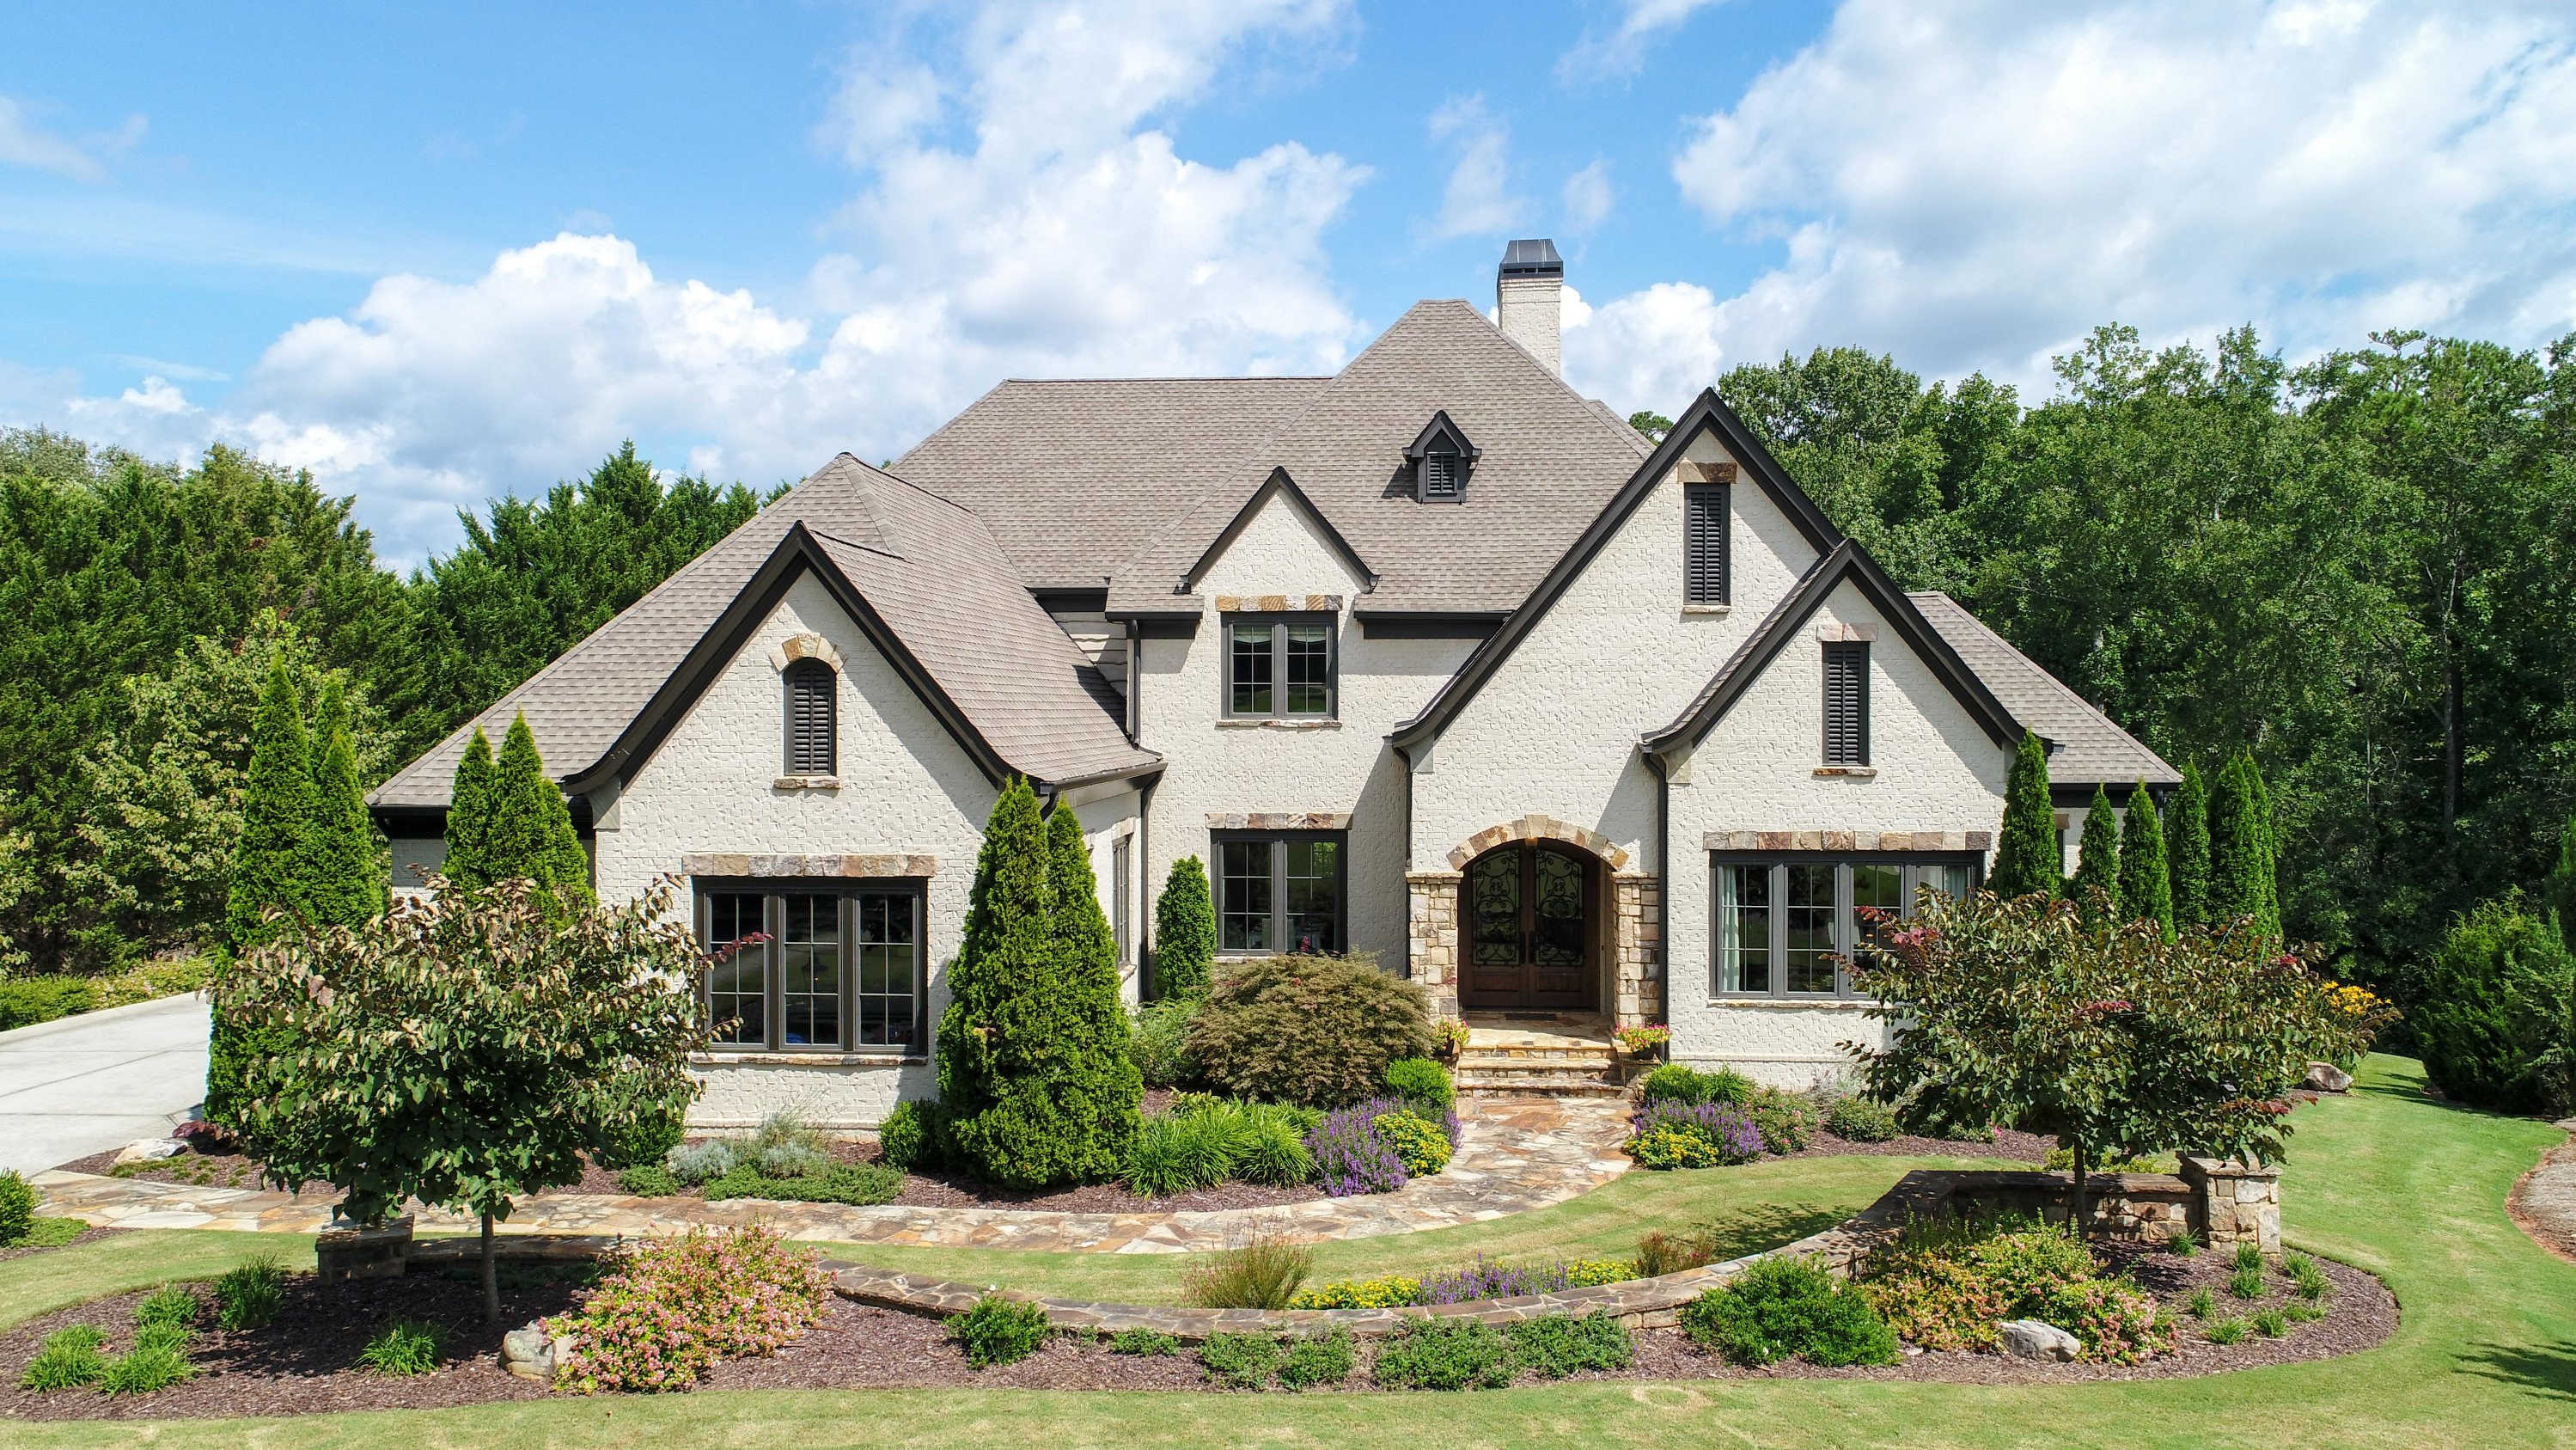 Every once in a while an amazing, masterfully built home becomes available to have a new owner.  This is one of the finest homes ever built on Lake Lanier.  Enjoy living just 2 blocks from the Chattahoochee Country Club.  Fine details & finishes, brick & stone exterior, 3 garages, saltwater, pebble tec, heated pool, spa, home theater, 4 fireplaces, covered decks & patios, boat dock w/party deck, terrace lvl bar/kitchen, & whole house & outdoor music system. 2nd flr wetbar. Enjoy waking up to heated floors & lake views in the main level owner's suite everyday.